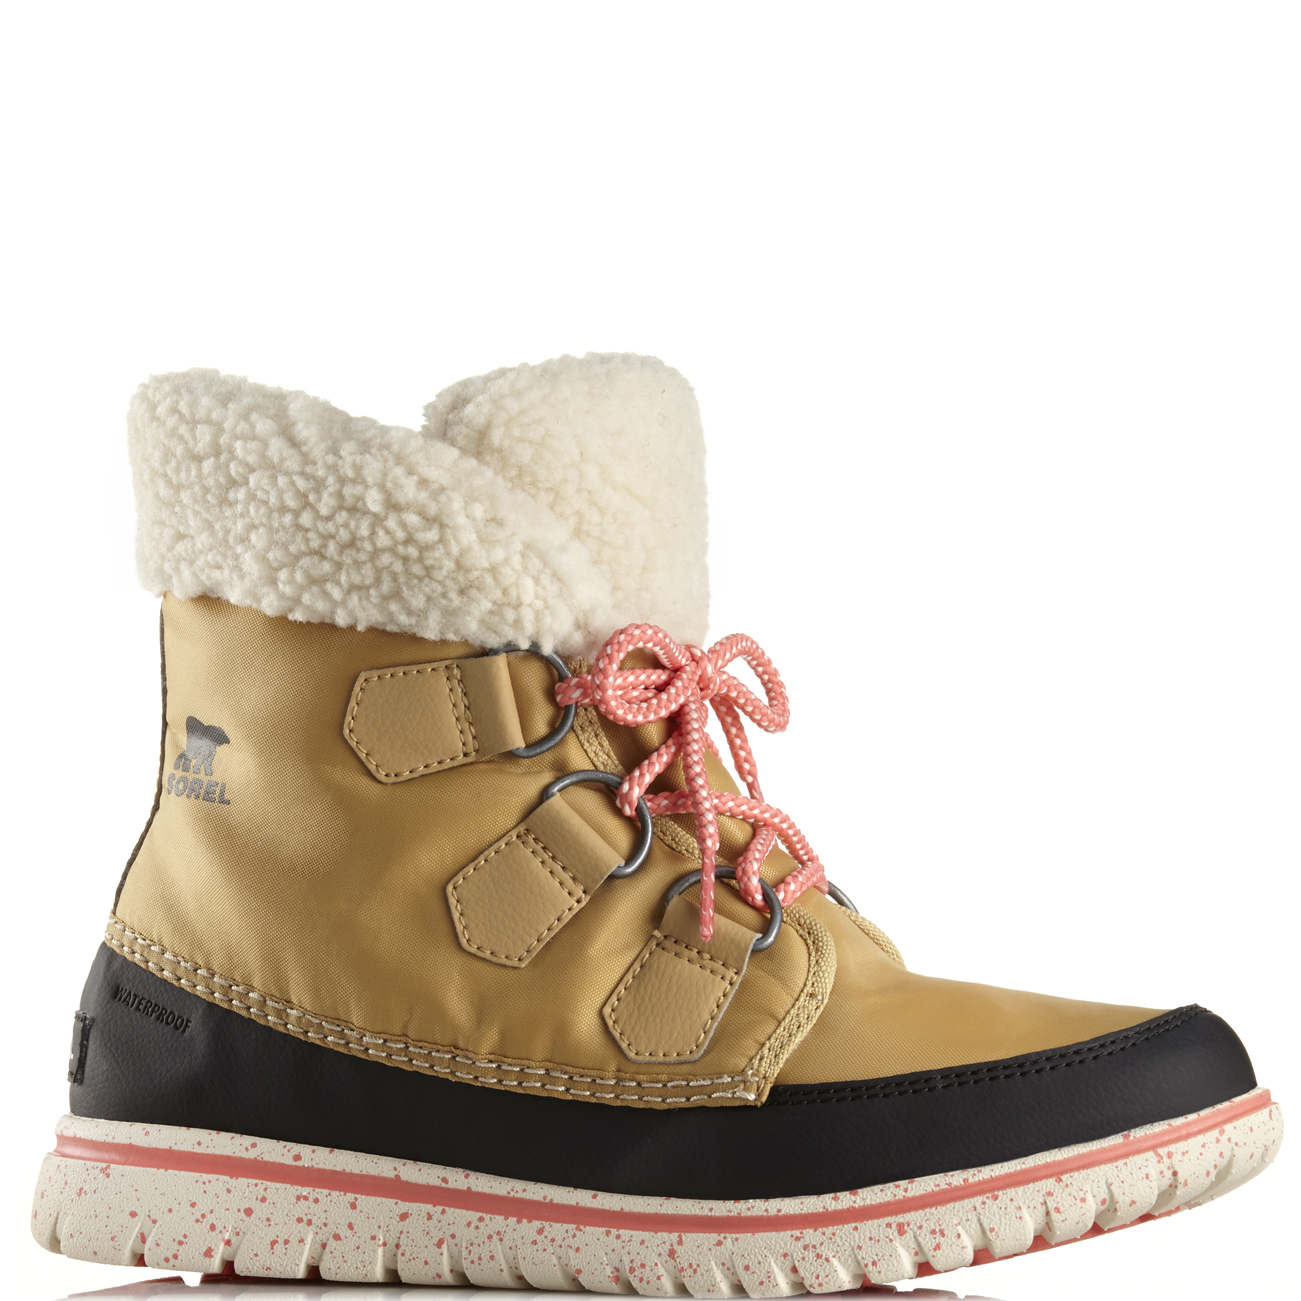 Womens Sorel Cozy Carnival Hiking Casual Winter Snow